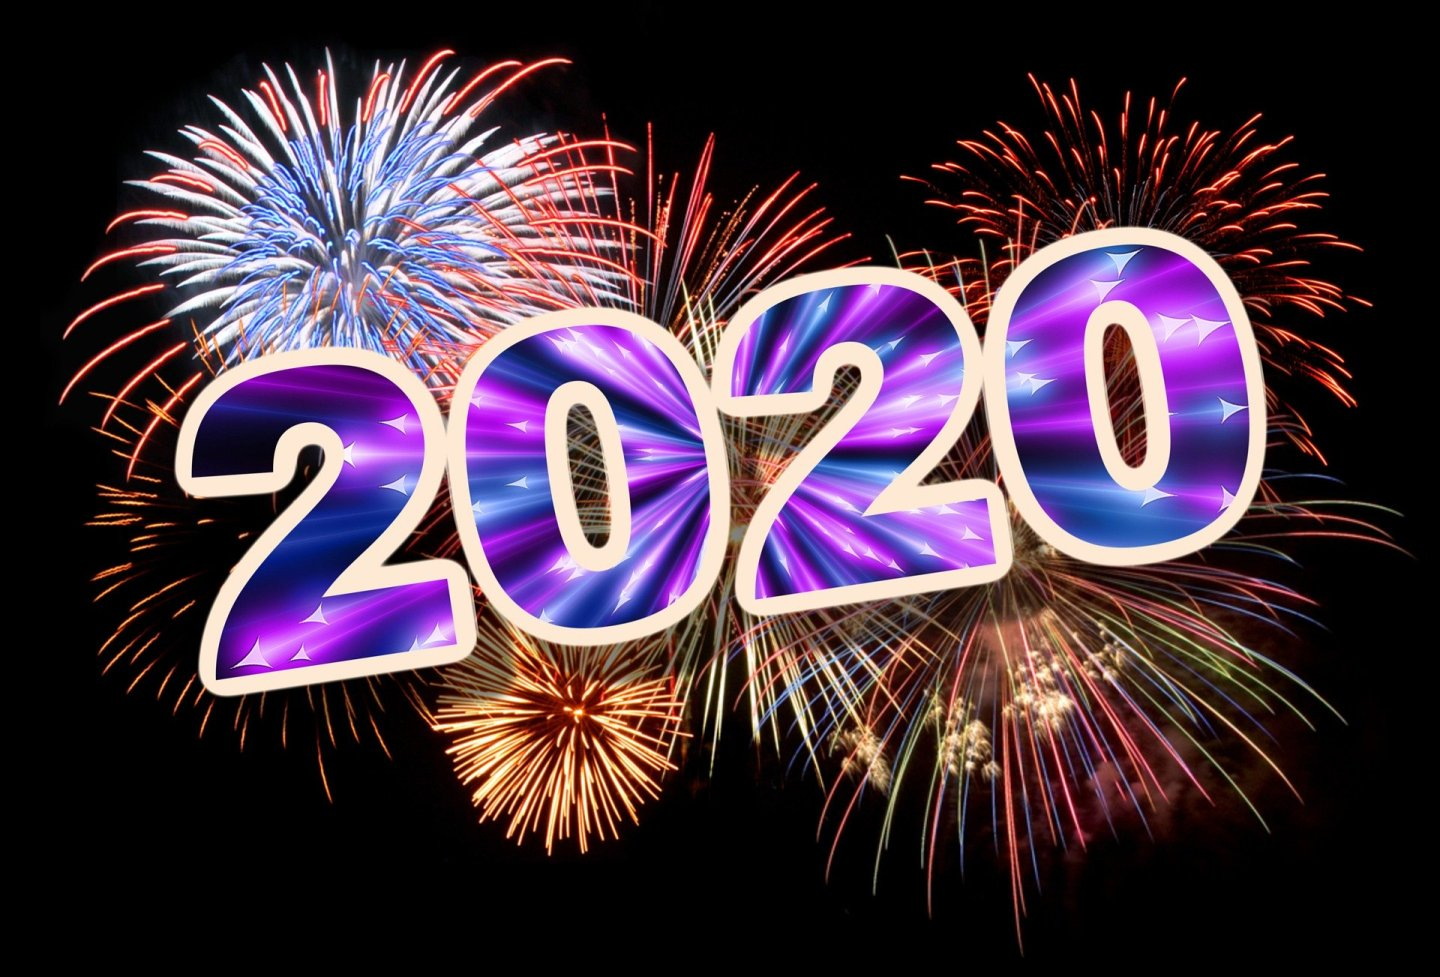 My New Year's Resolutions for 2020